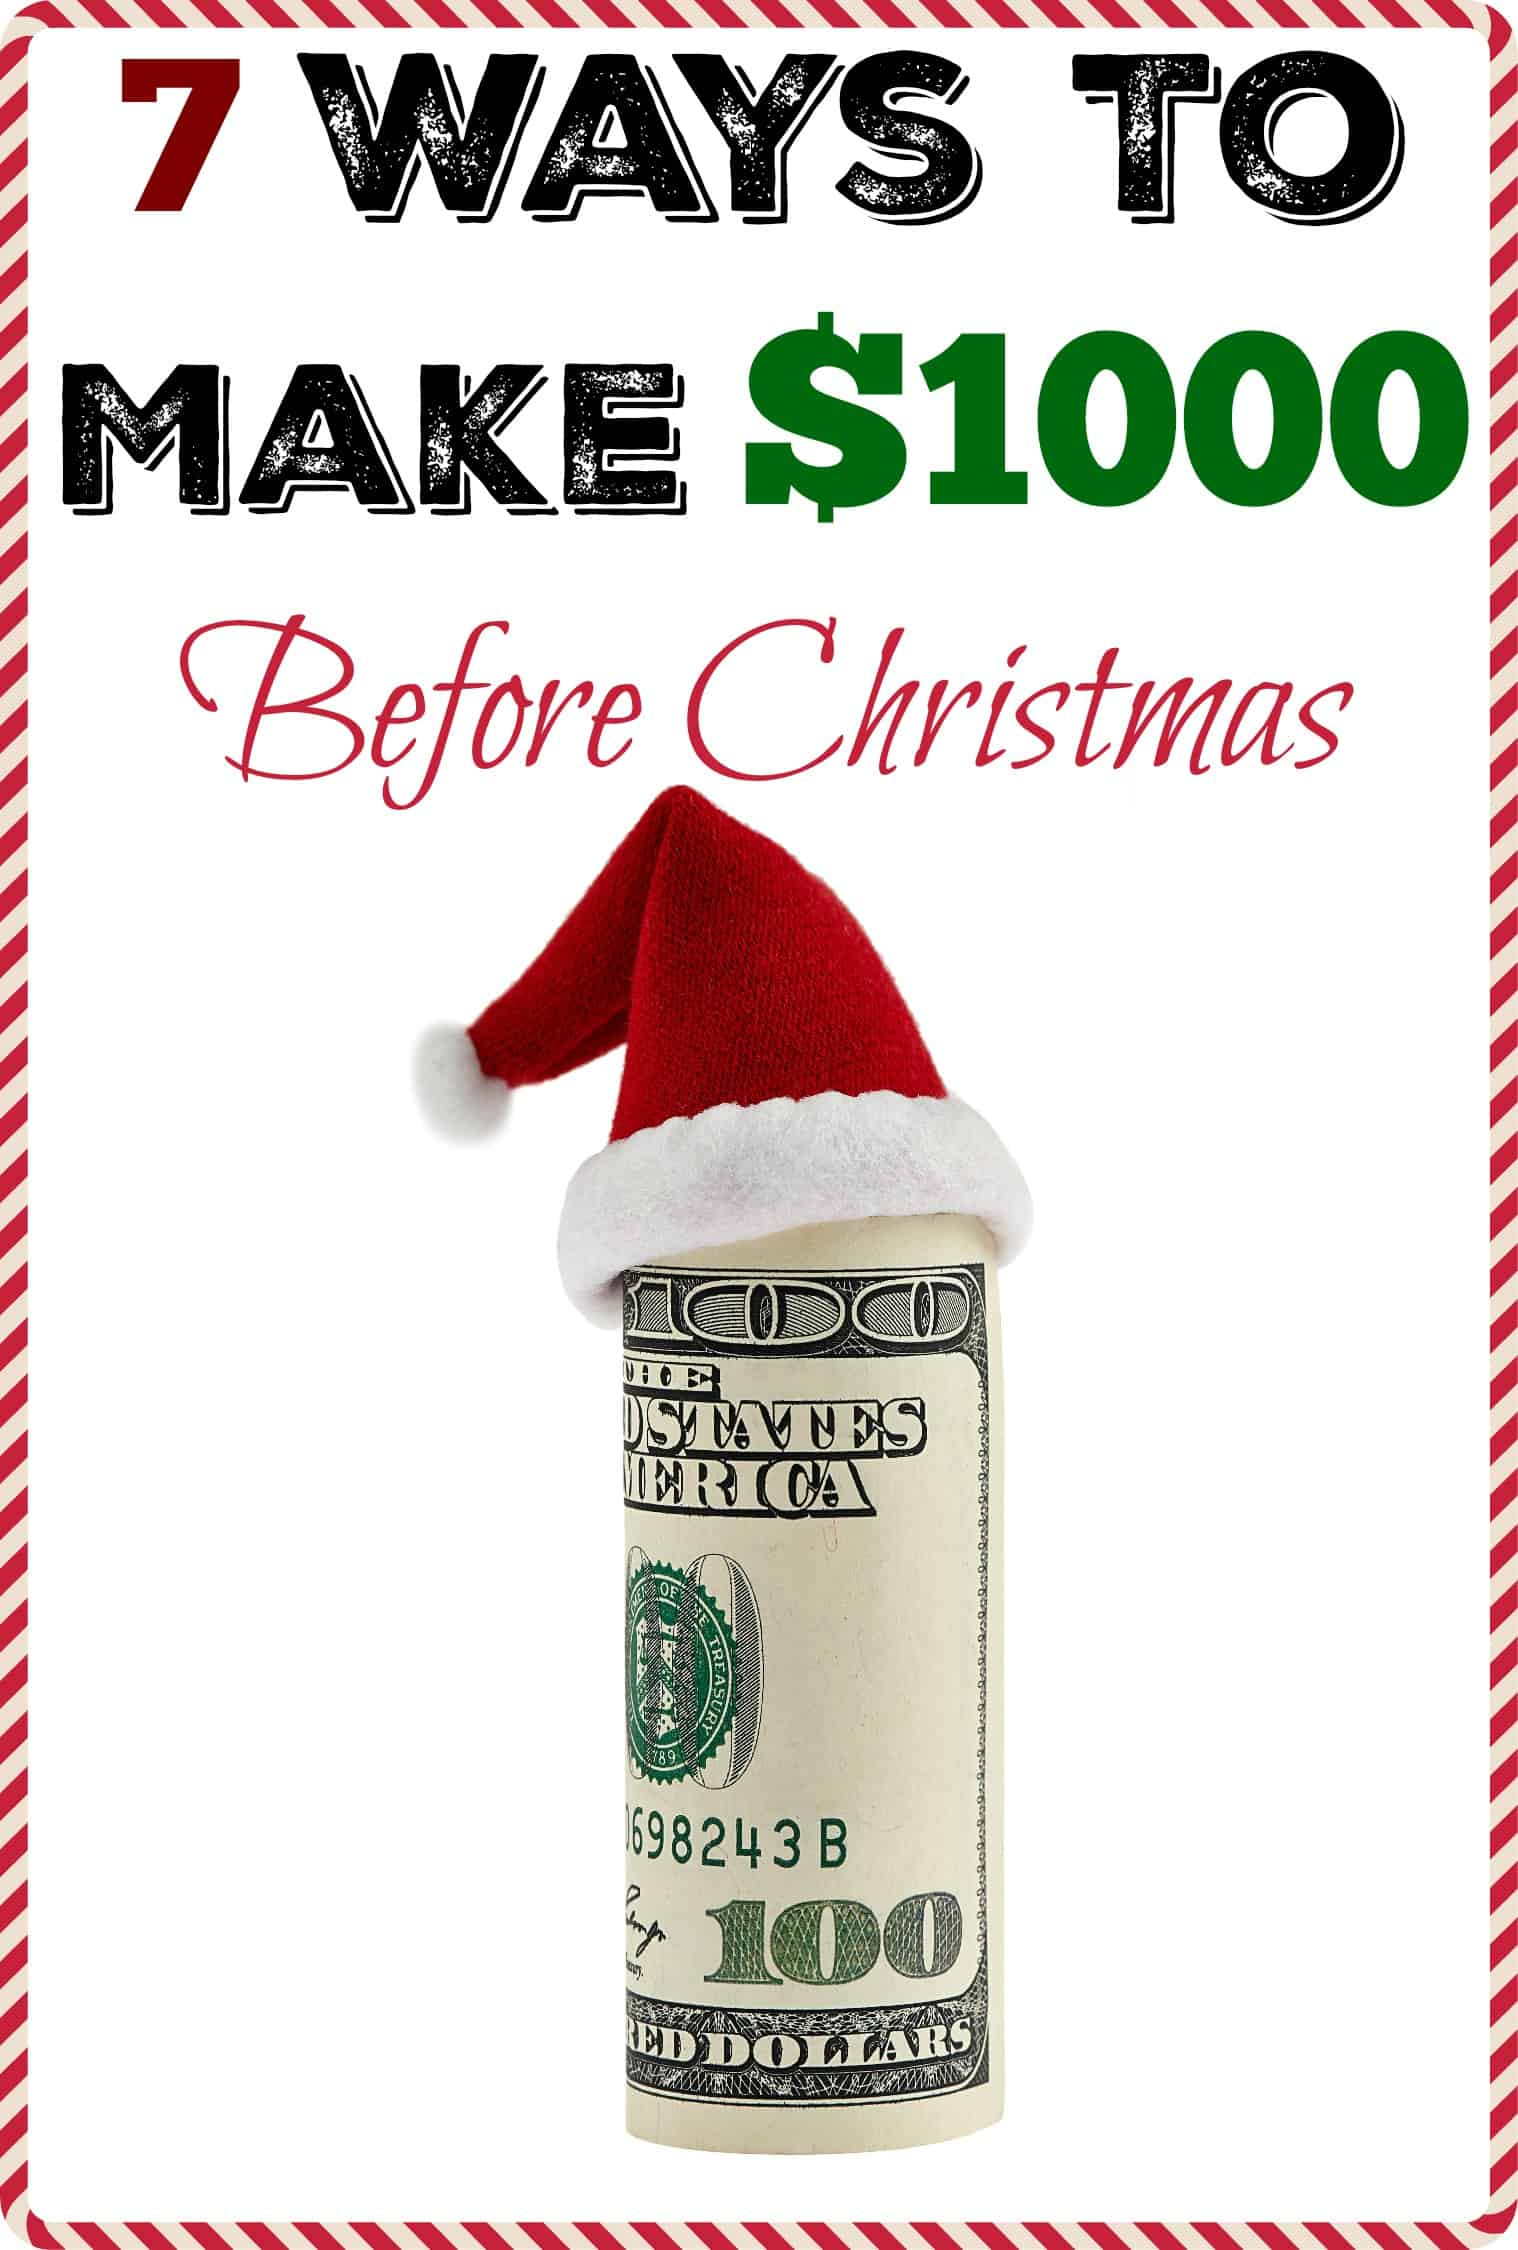 1000 ways to make money from home uk